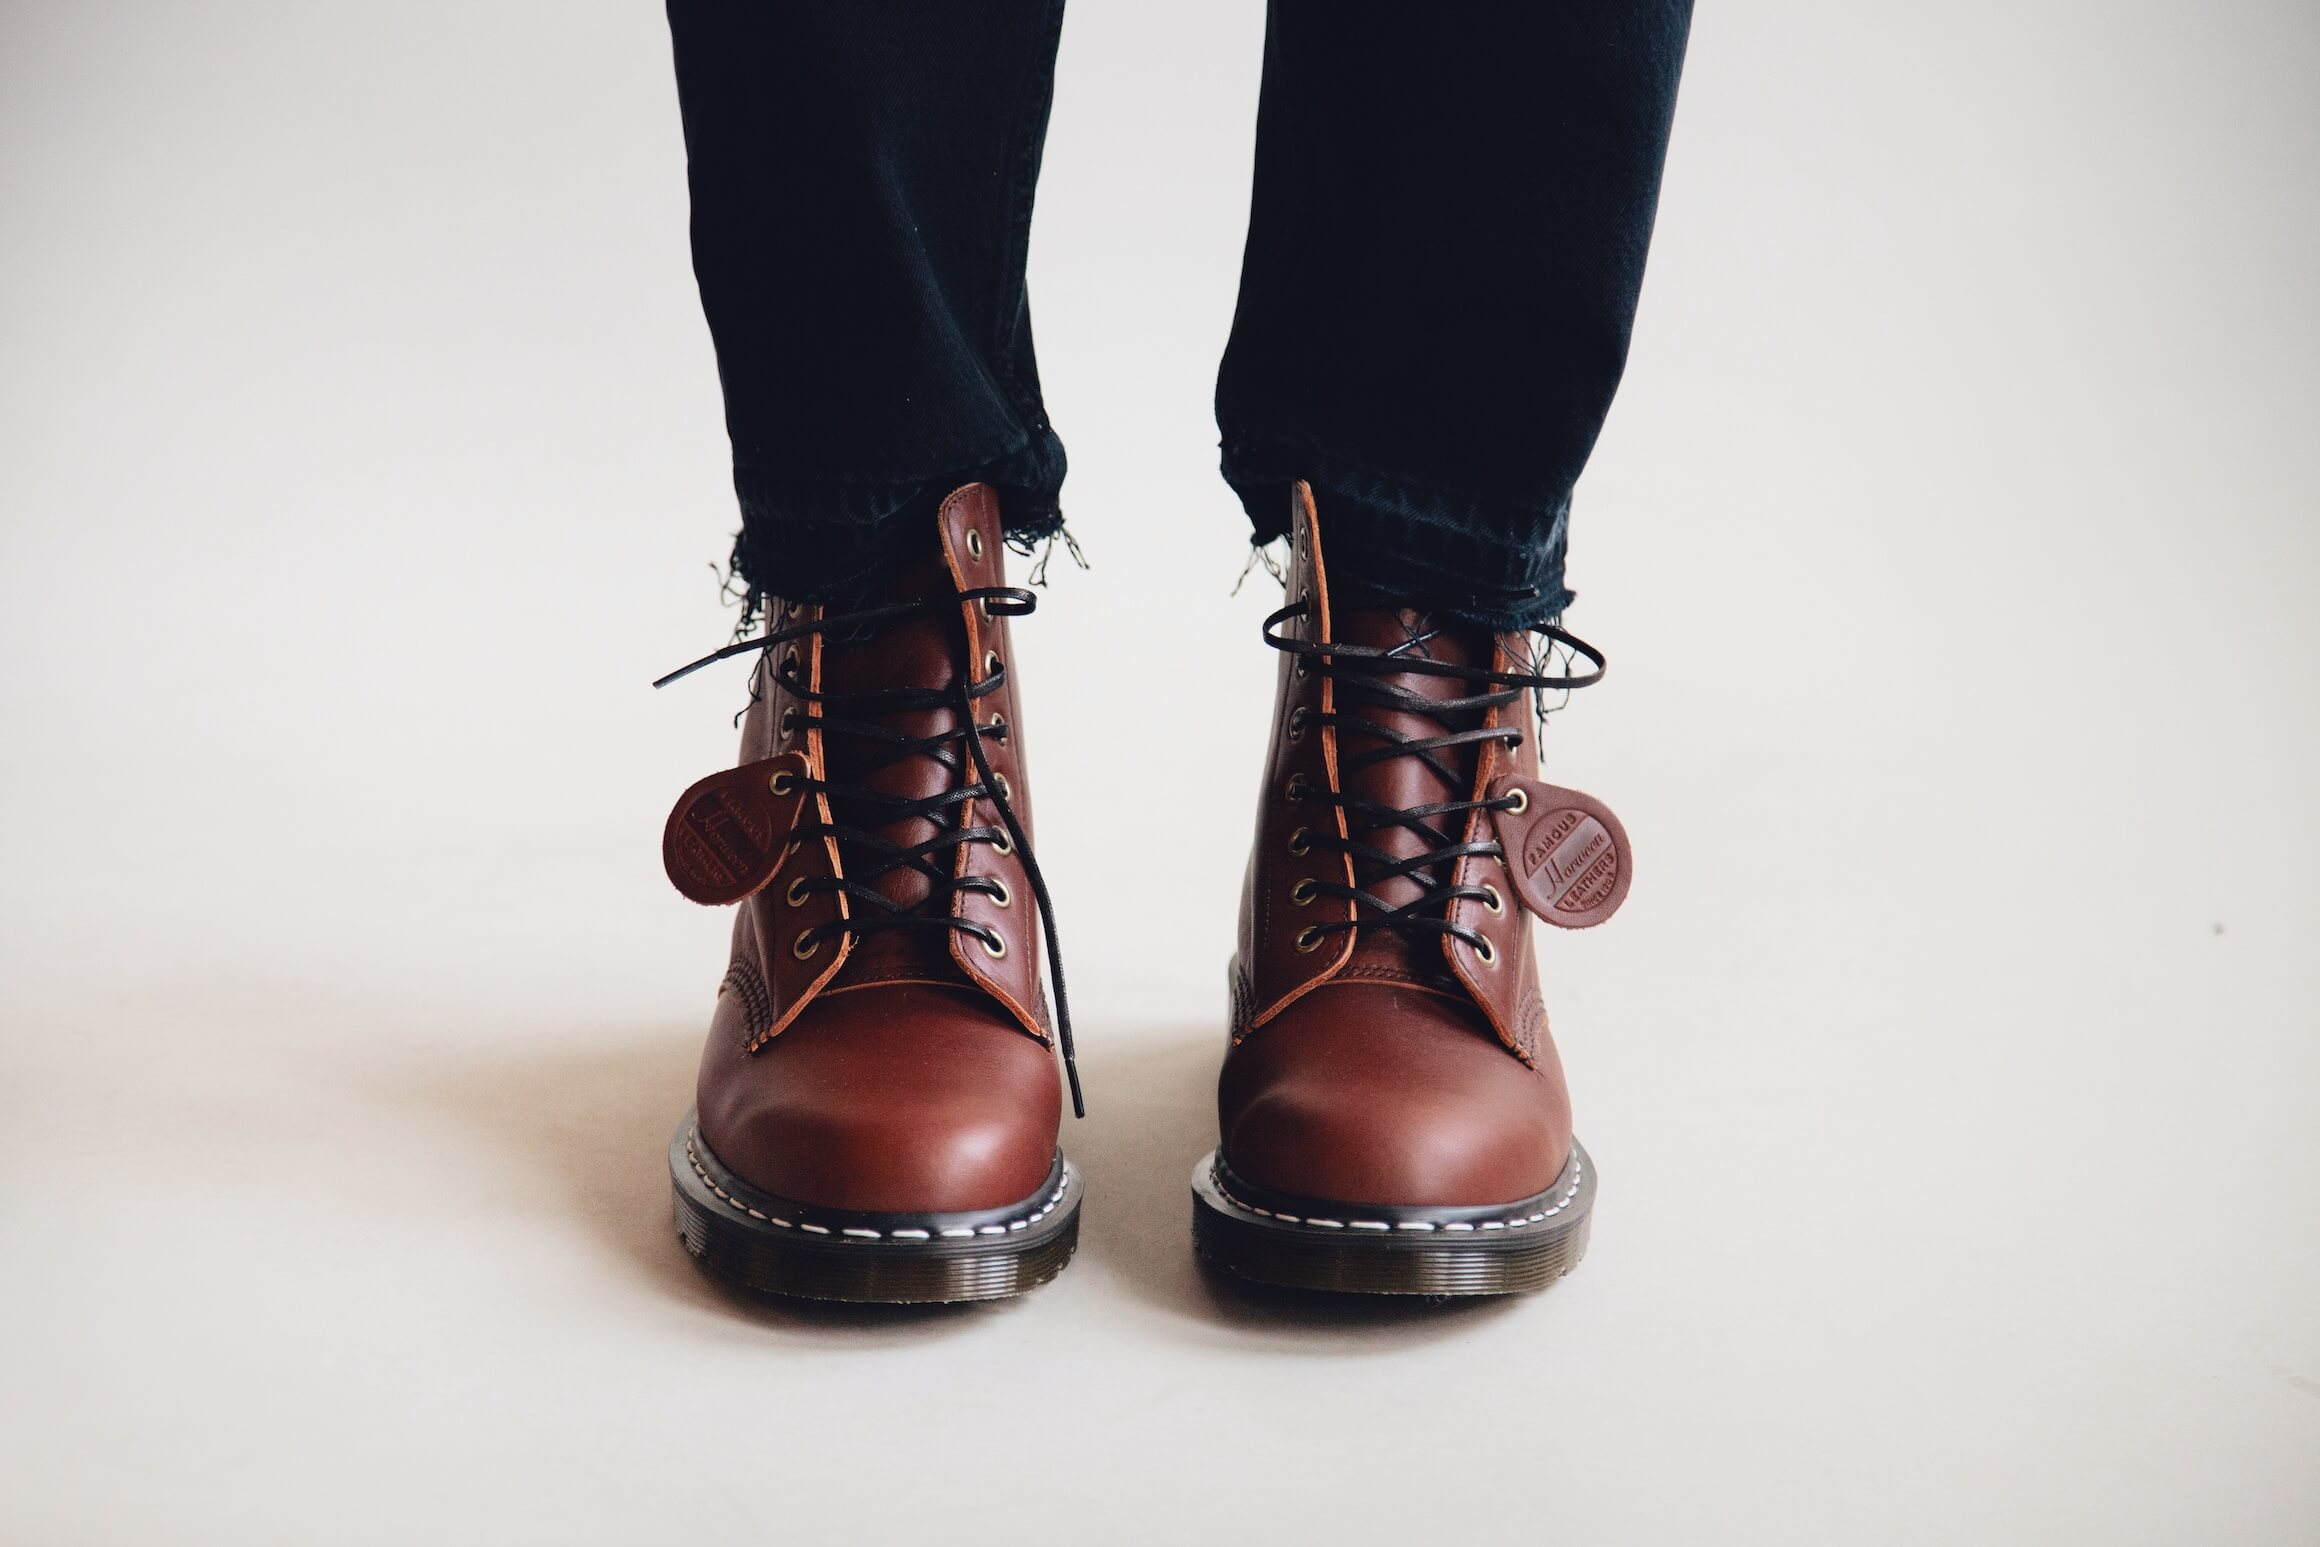 harmony dorian jean and dr. martens made in england 1460 boots on body